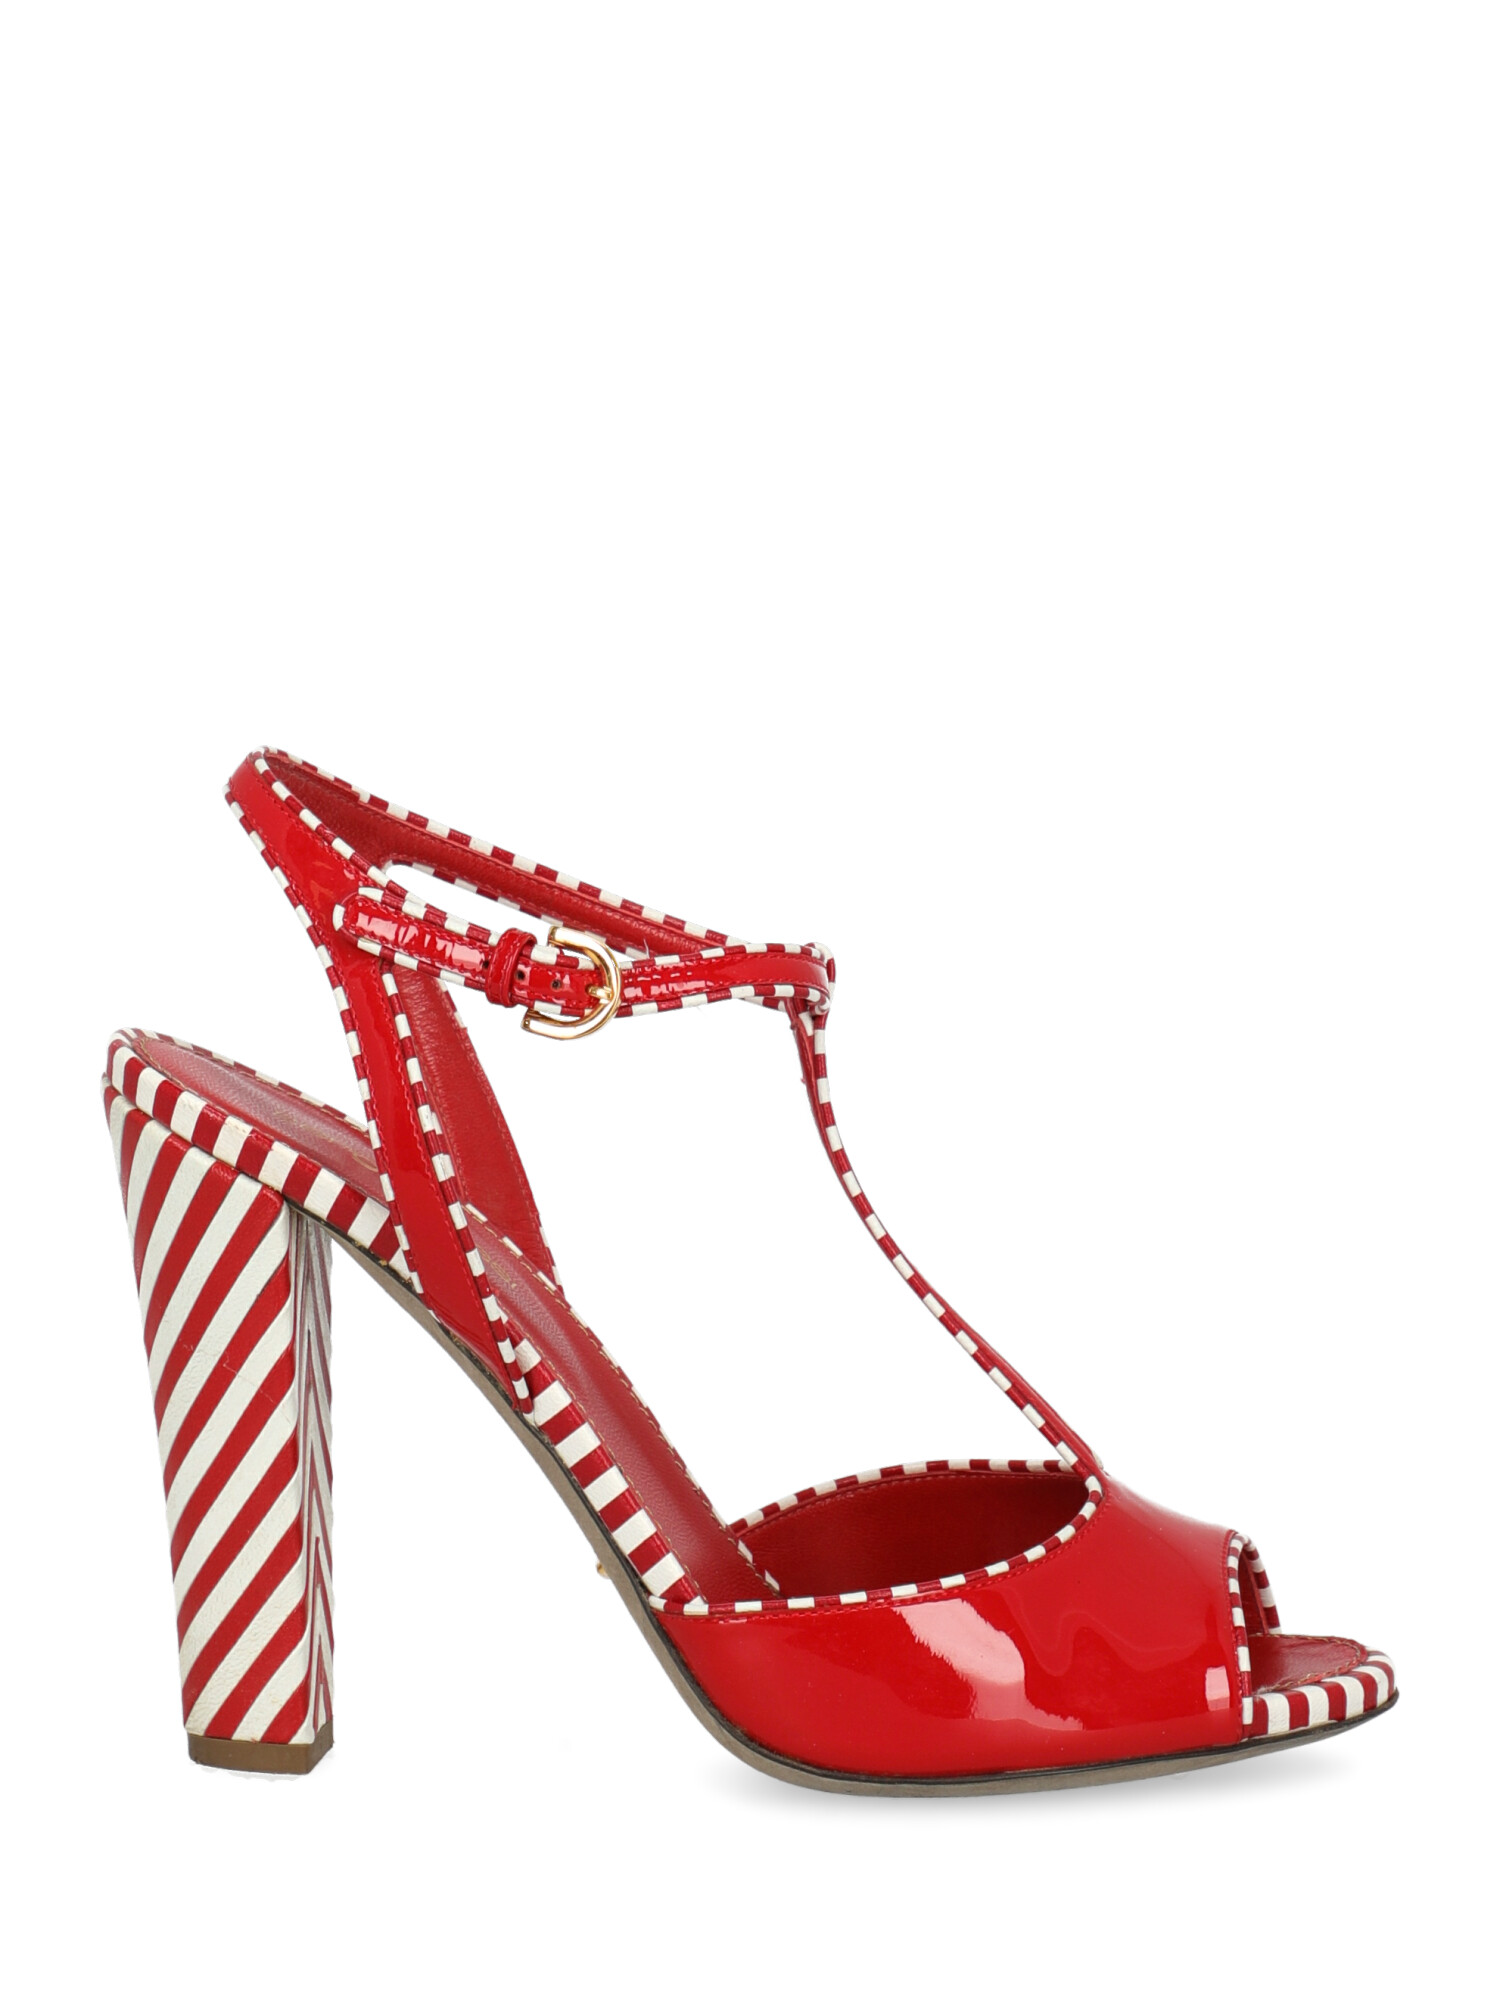 Pre-owned Sergio Rossi Shoe In Red, White